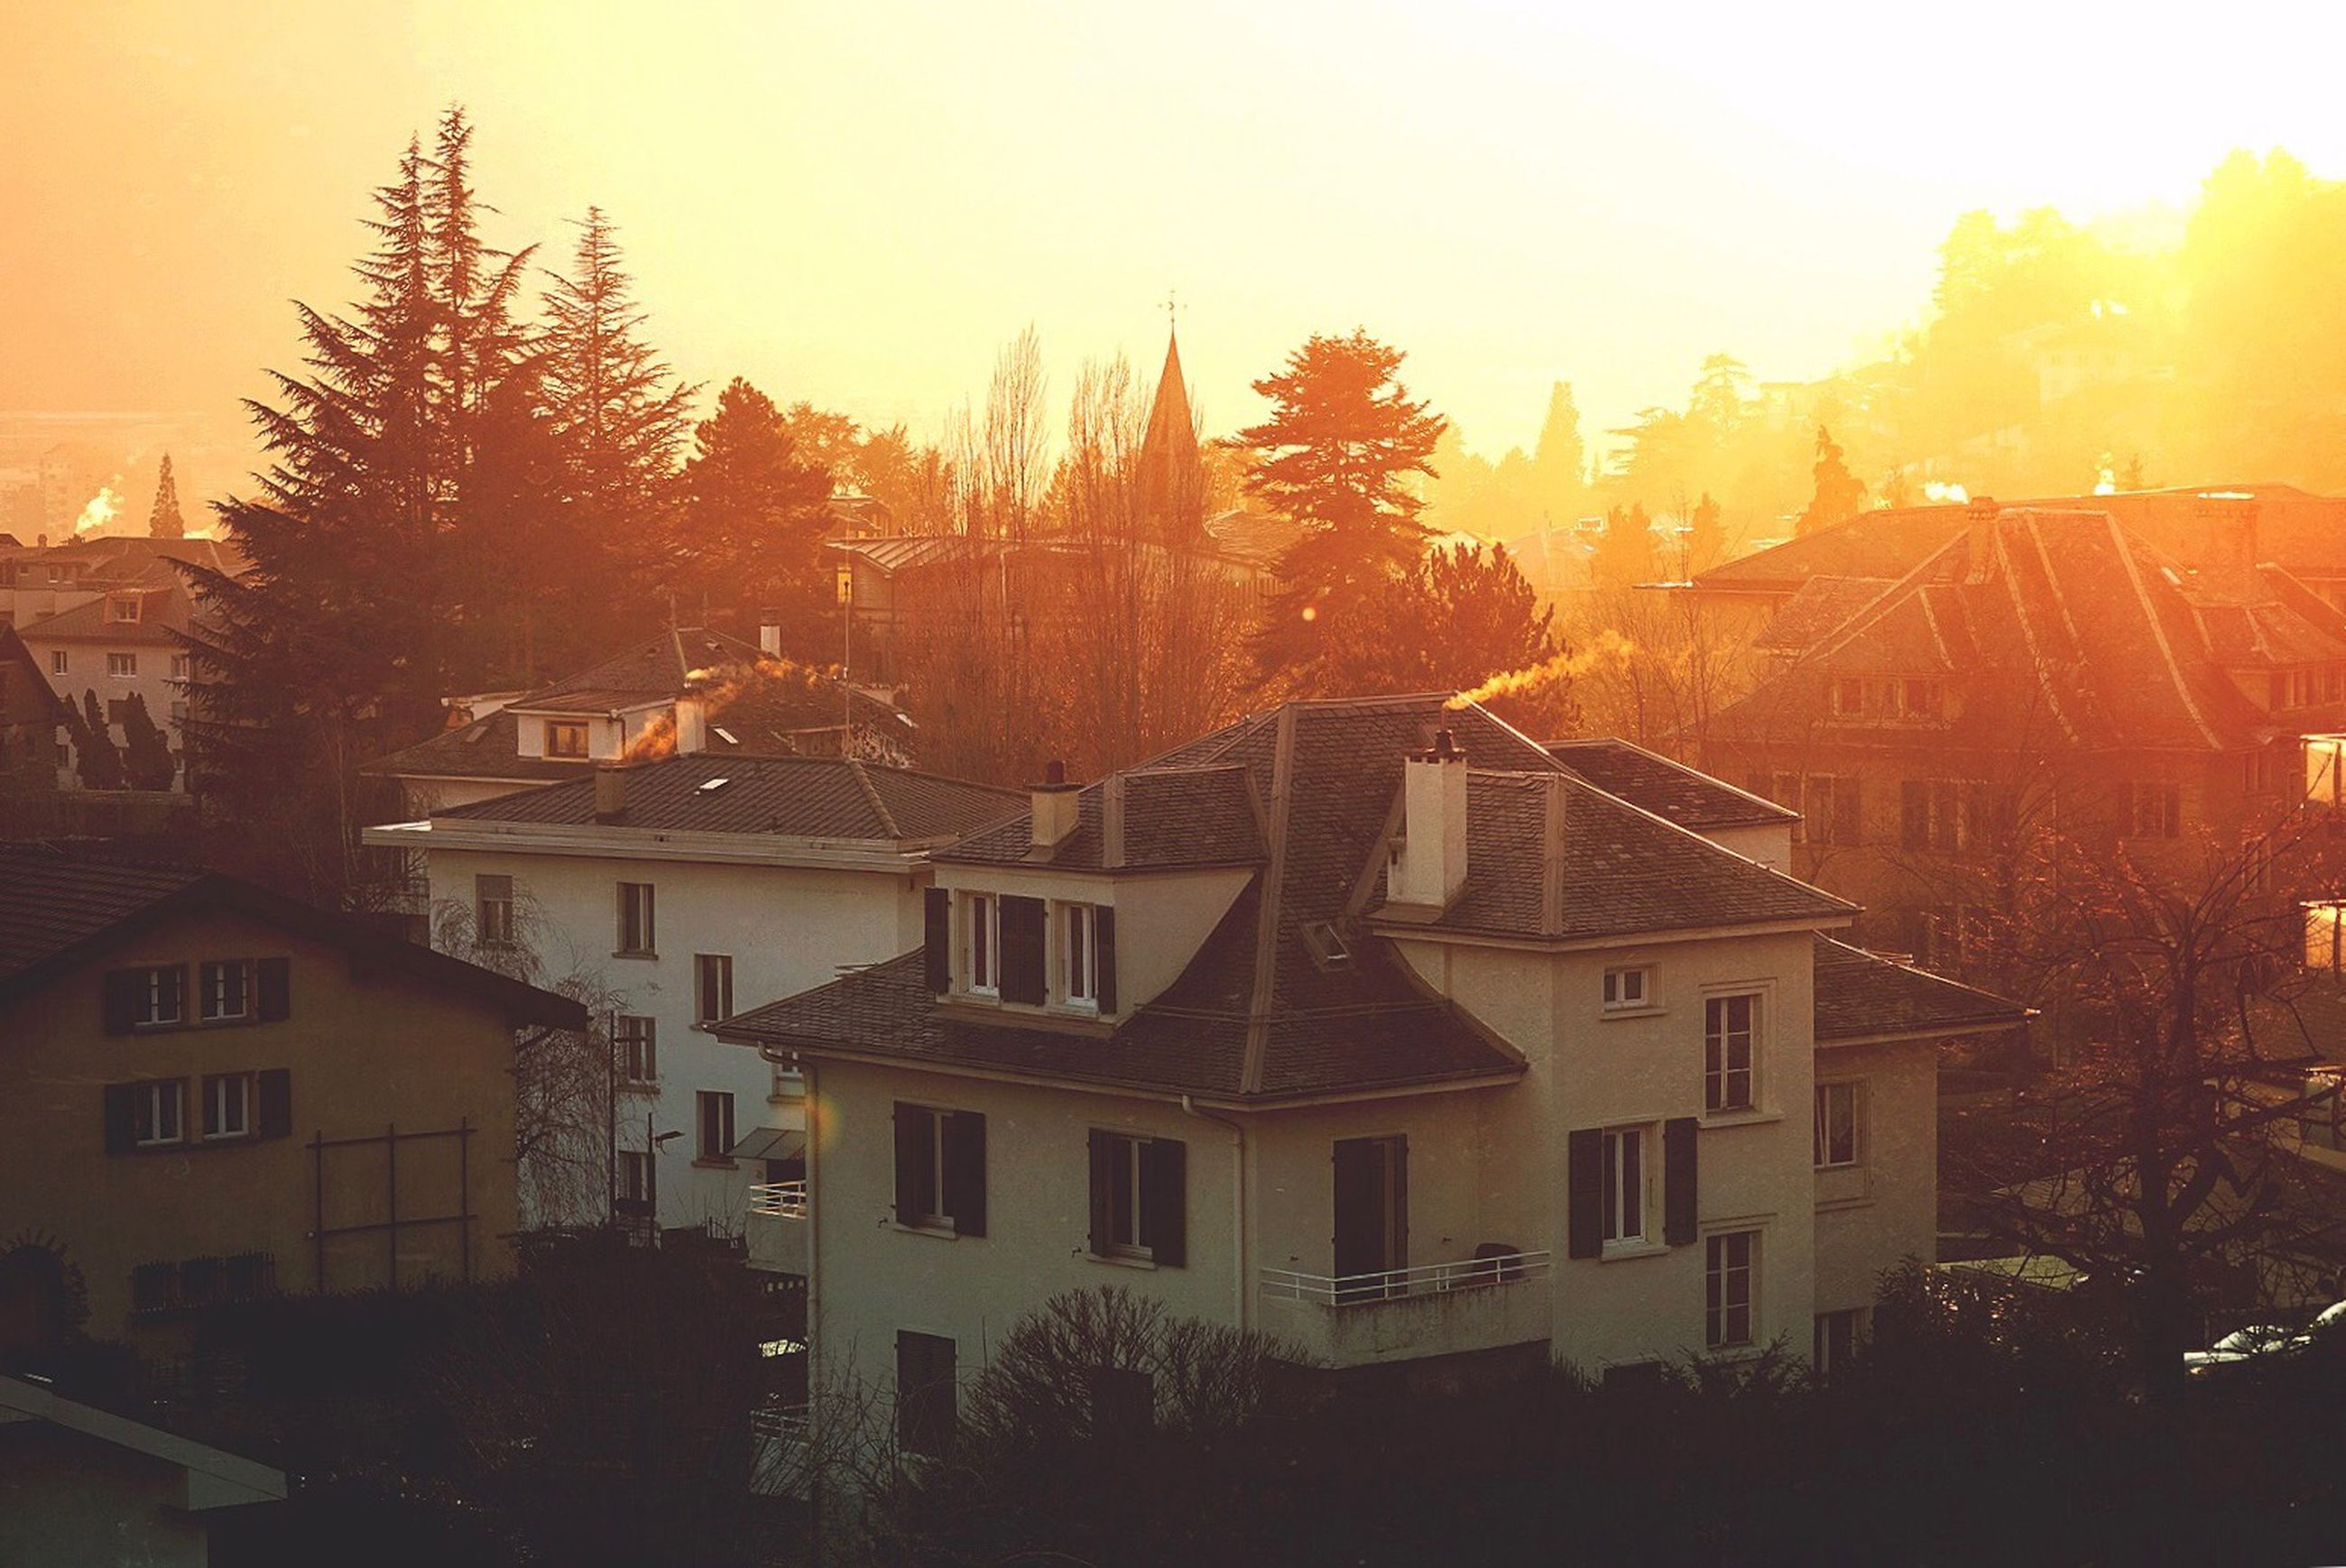 building exterior, architecture, tree, built structure, plant, building, sky, nature, residential district, no people, sunset, house, city, high angle view, sunlight, outdoors, orange color, sun, day, roof, townscape